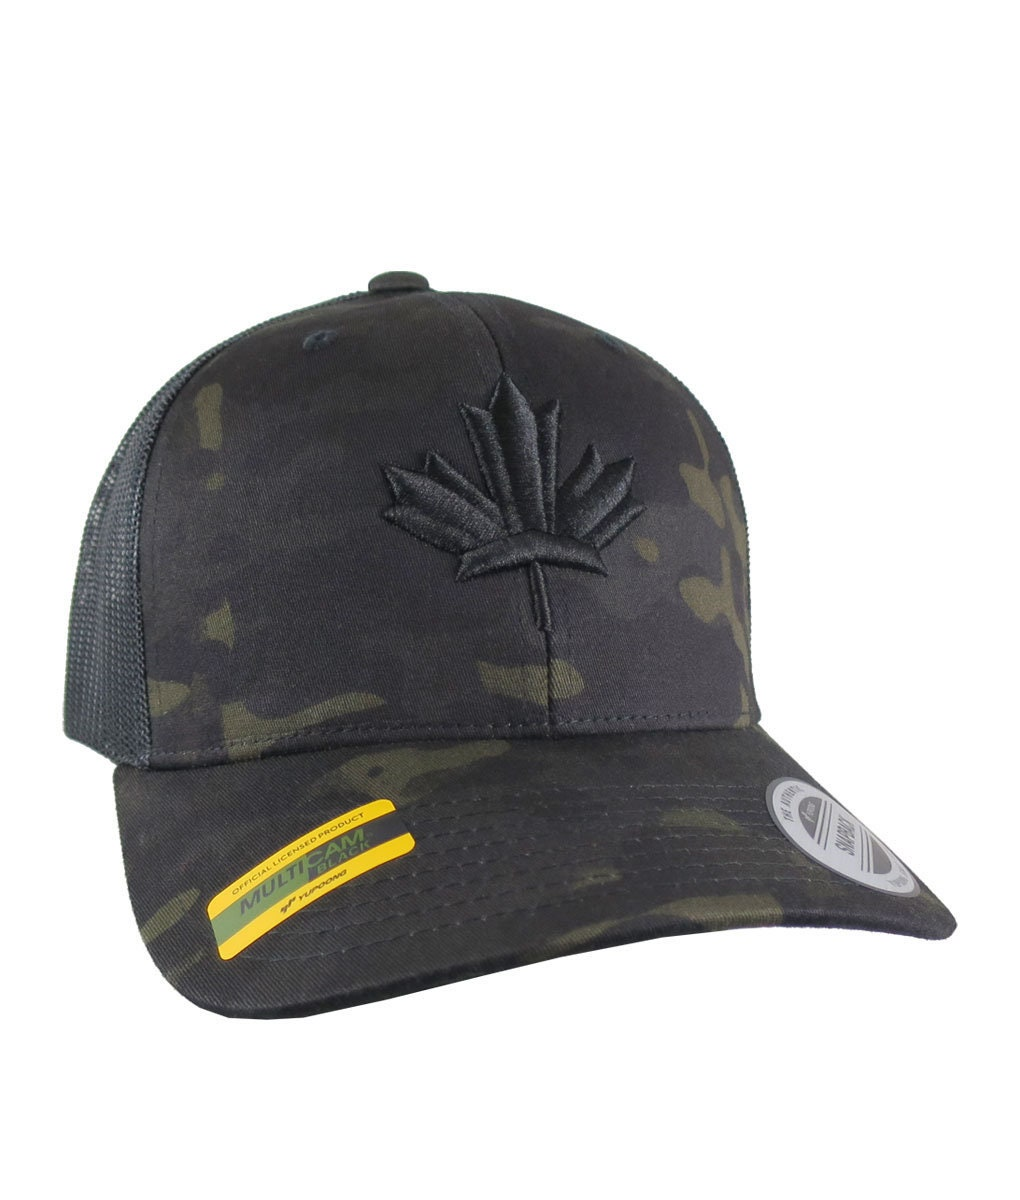 cfb8350bcab88 3D Puff Black Maple Leaf Raised Embroidery on an Adjustable Black Multicam  Structured Premium Mid-Profile Yupoong Trucker Mesh Cap